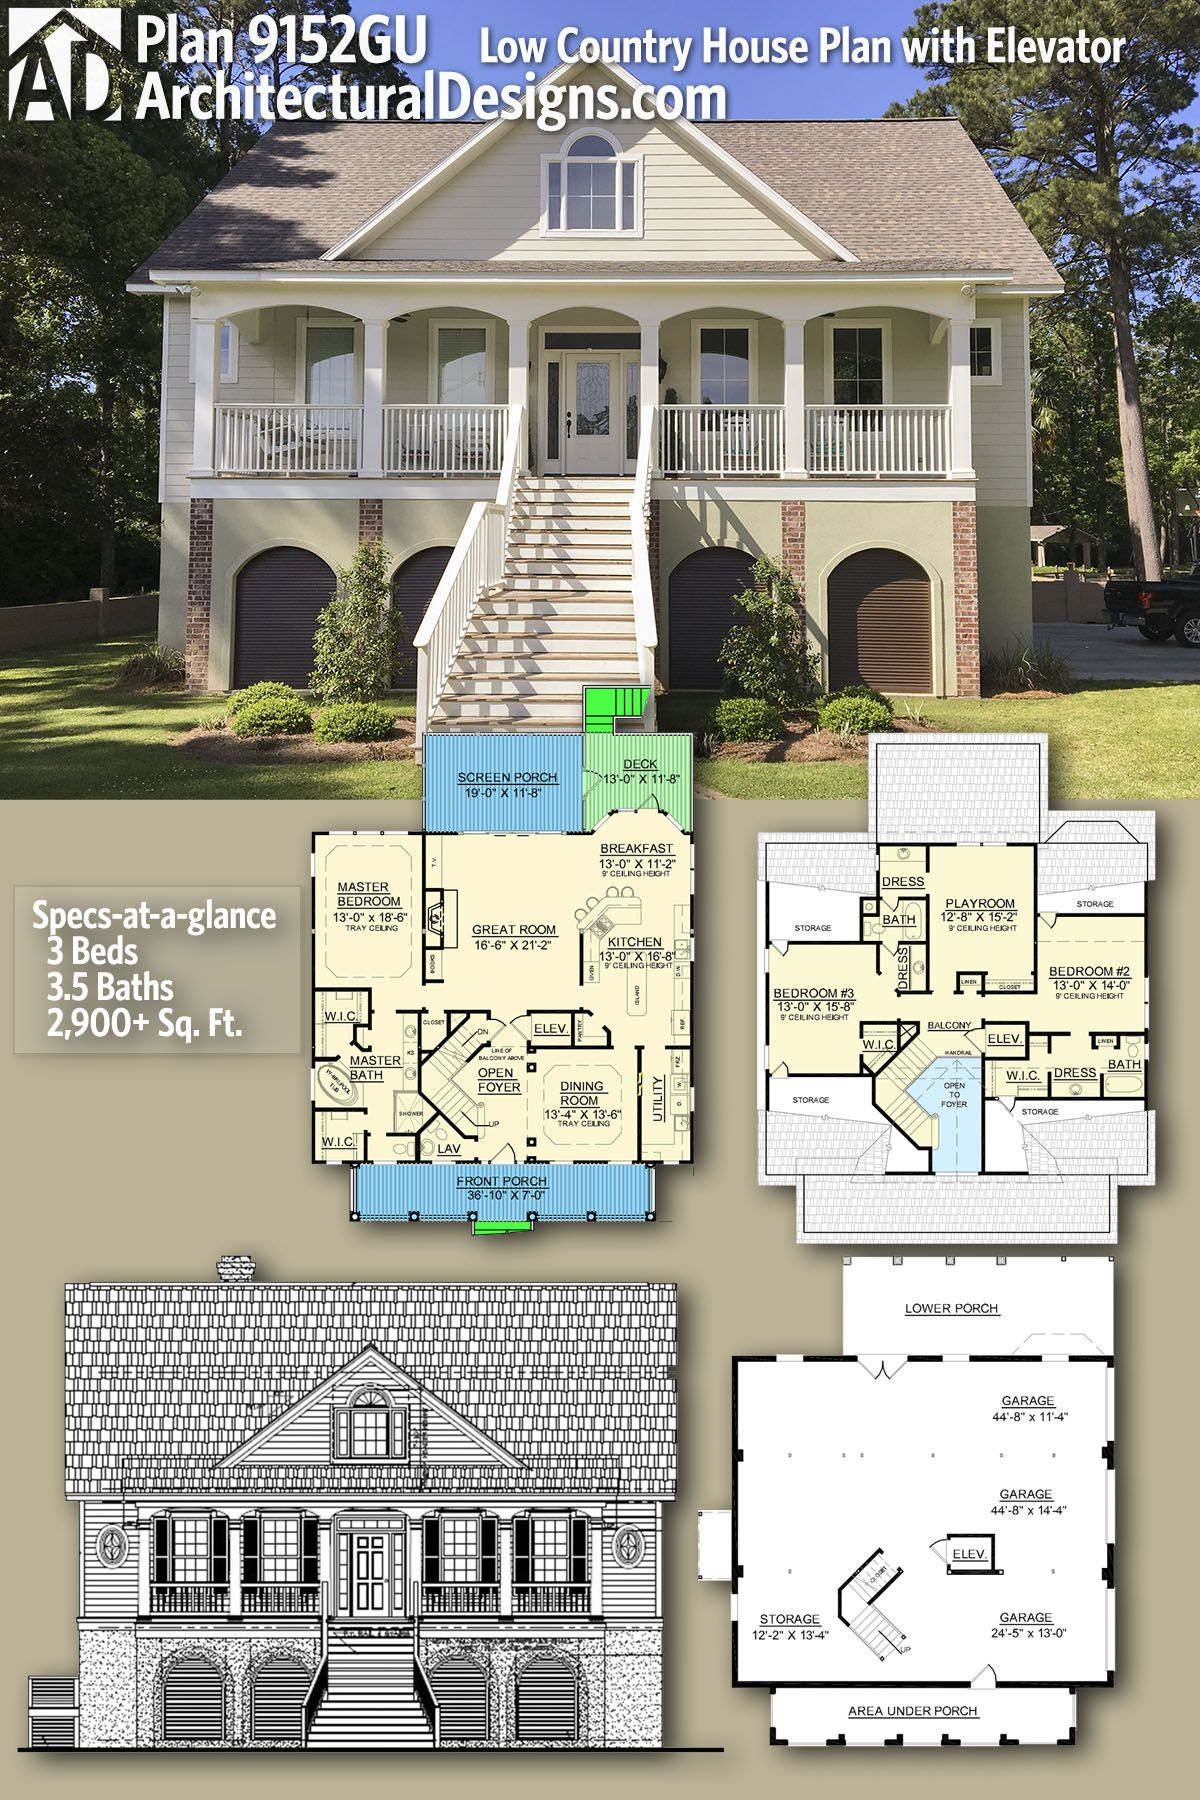 Plan 9152gu Low Country House Plan With Elevator Architectural Design House Plans Low Country Homes House Plans